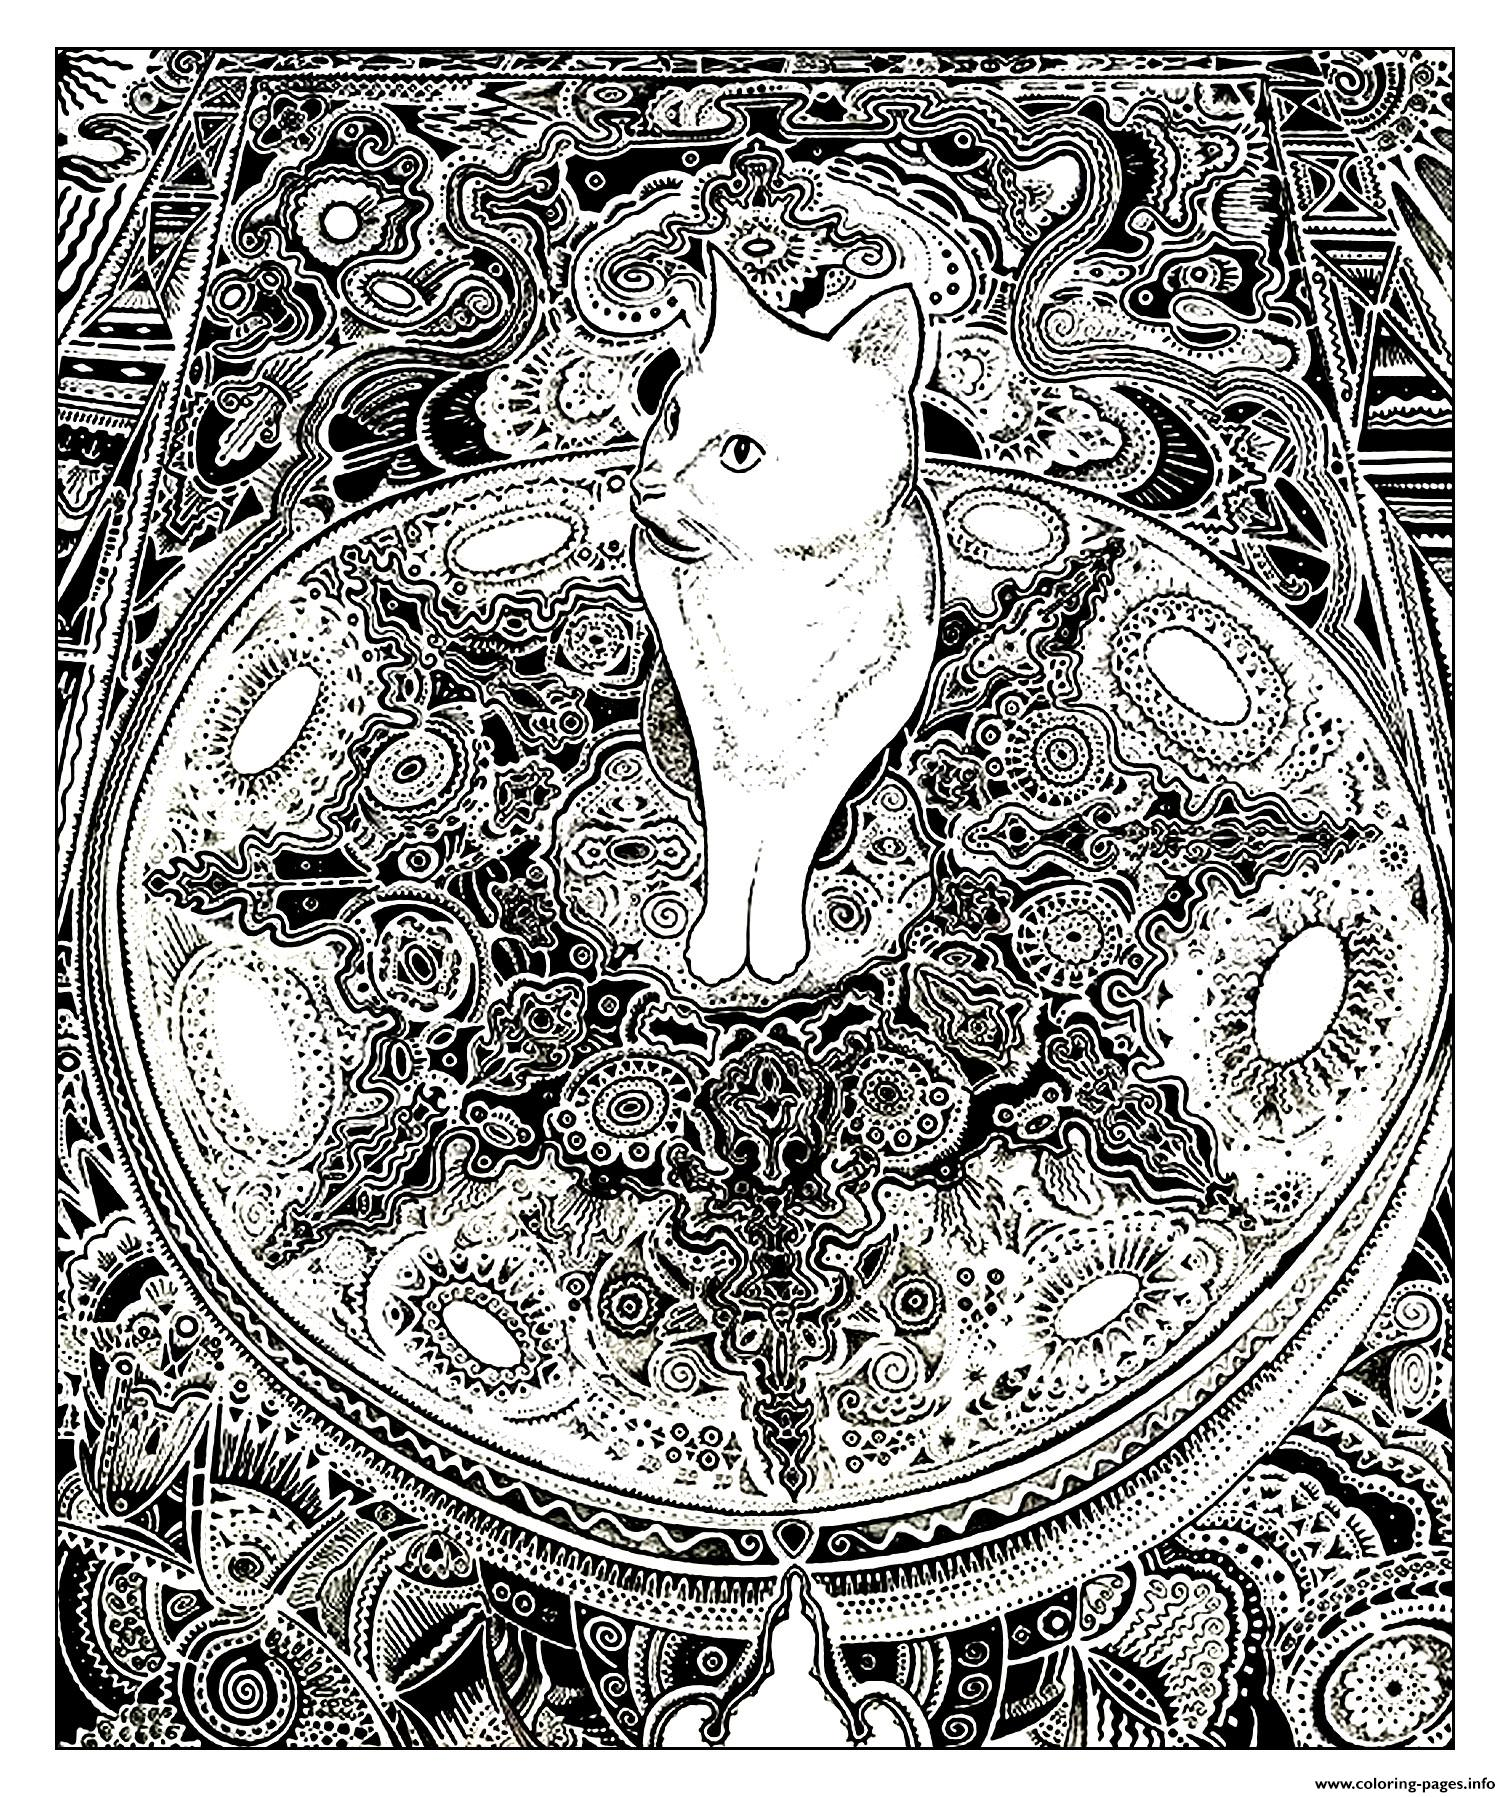 Kitten cat on carpet coloring pages printable for Carpet coloring pages